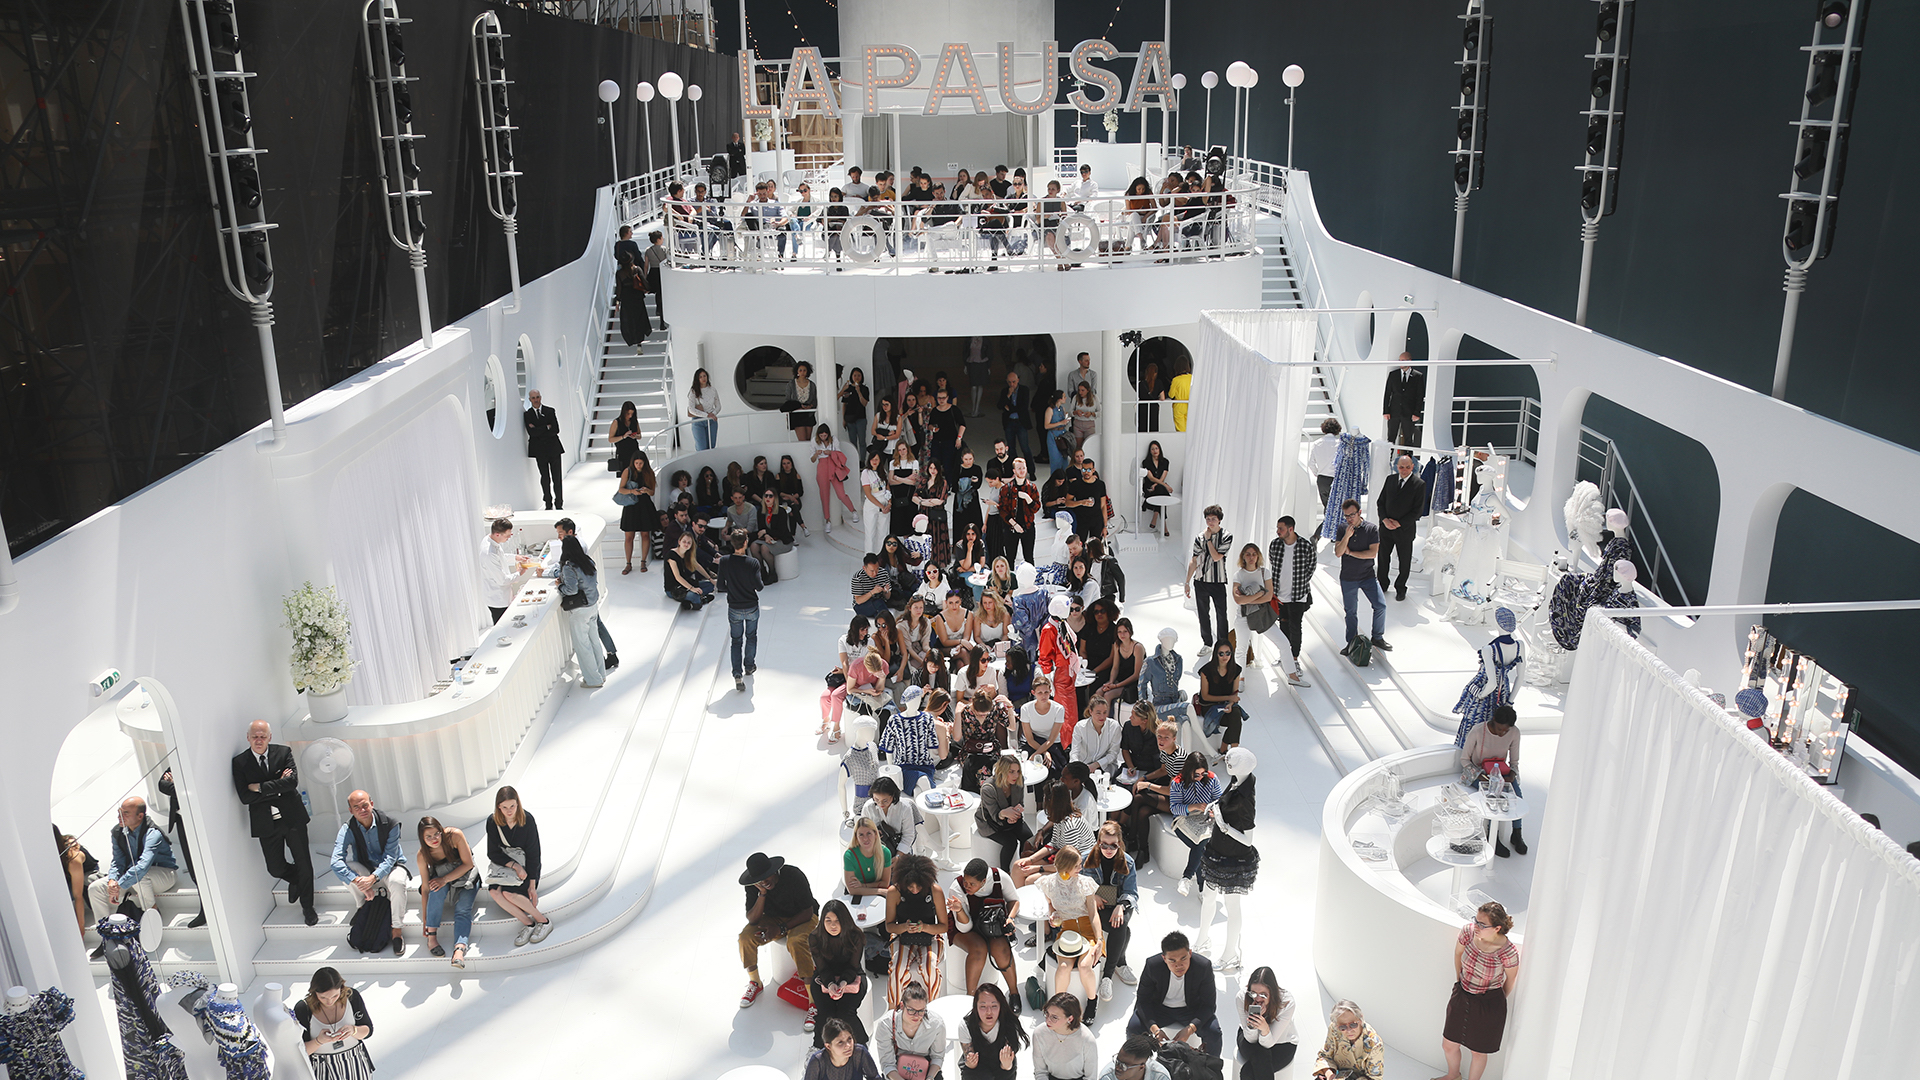 #ChanelGeneration Chanel invited 500 students to Cruise 2019